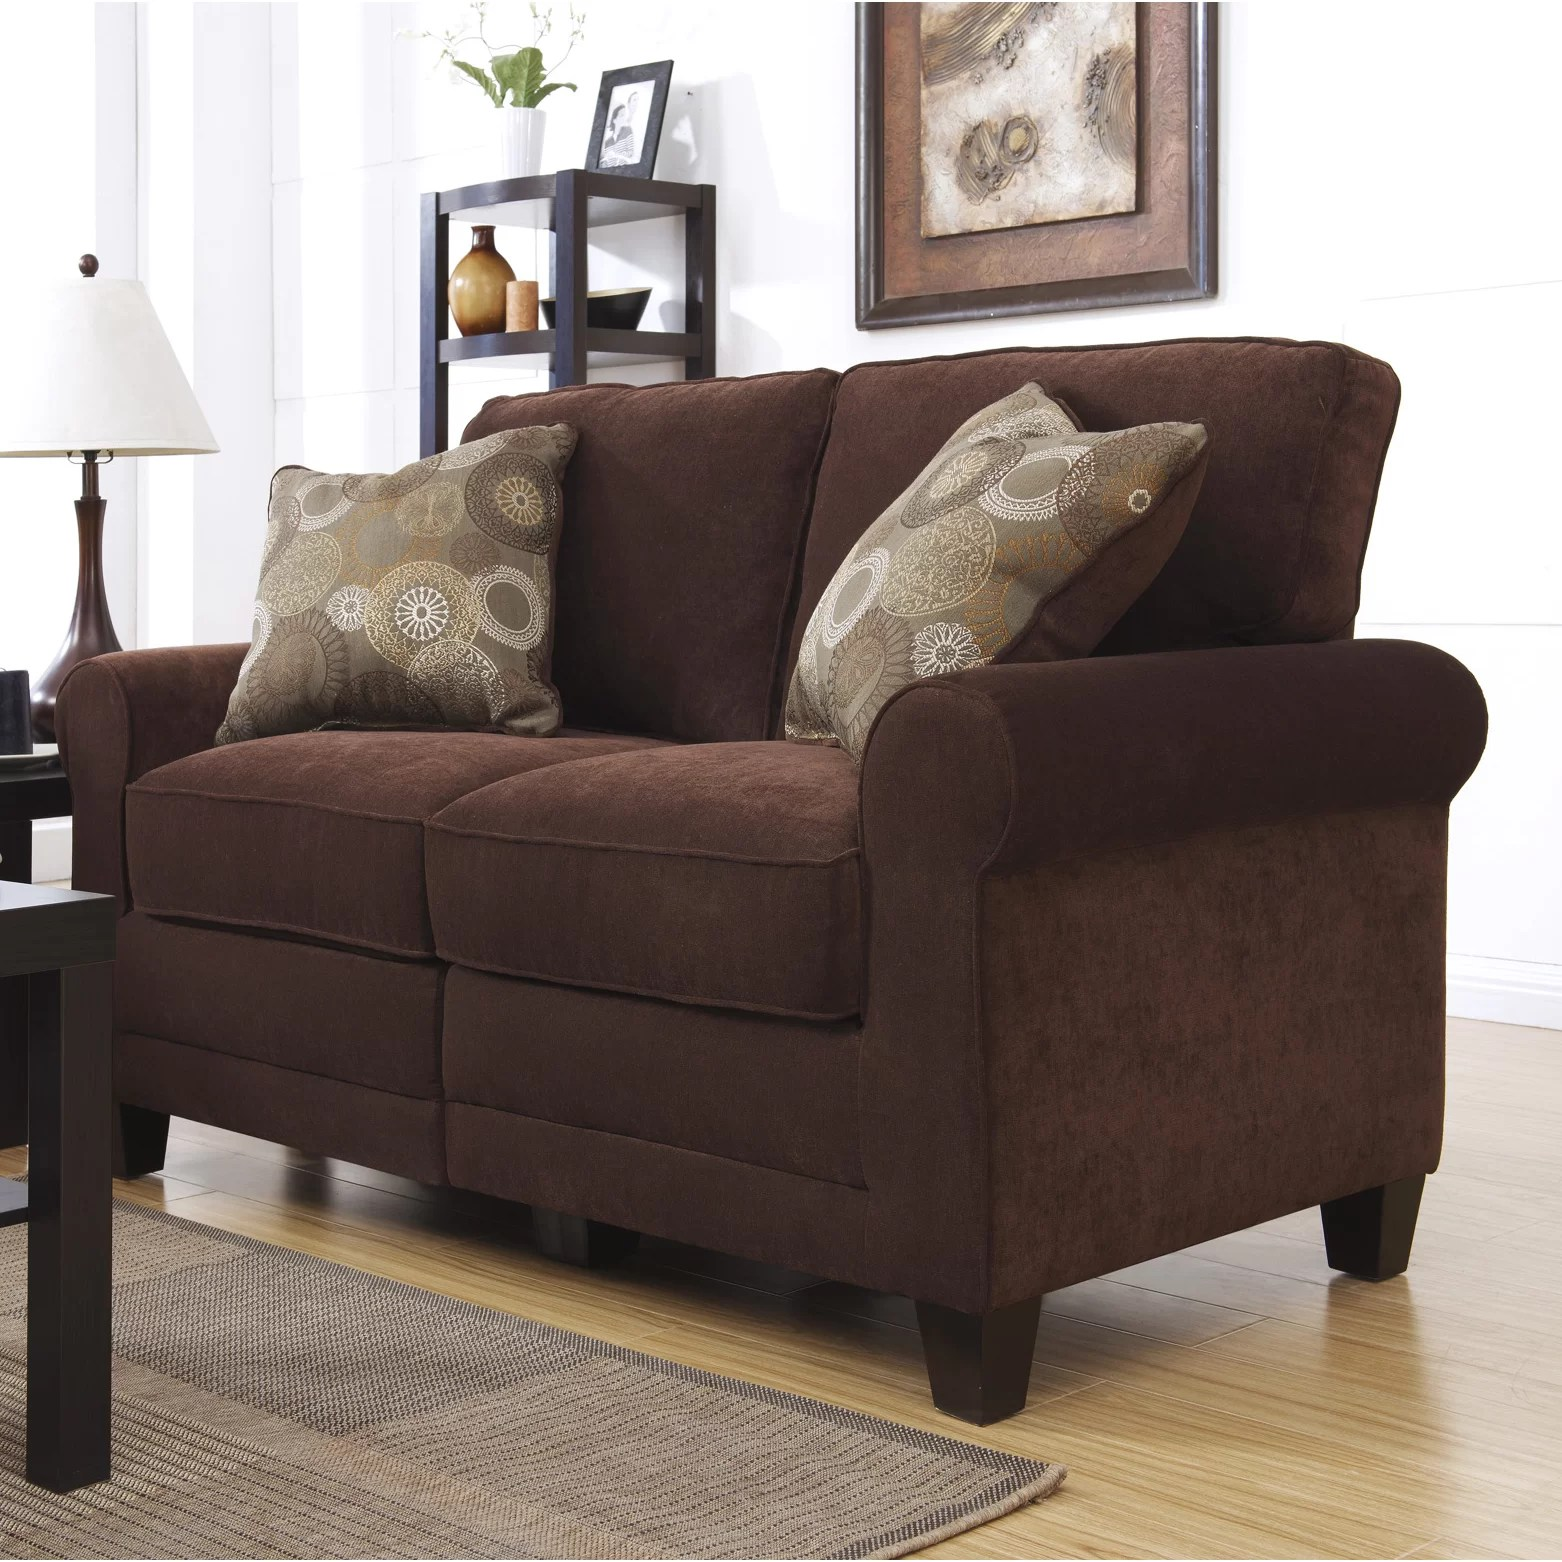 Serta at Home Copenhagen Loveseat  Reviews  Wayfair